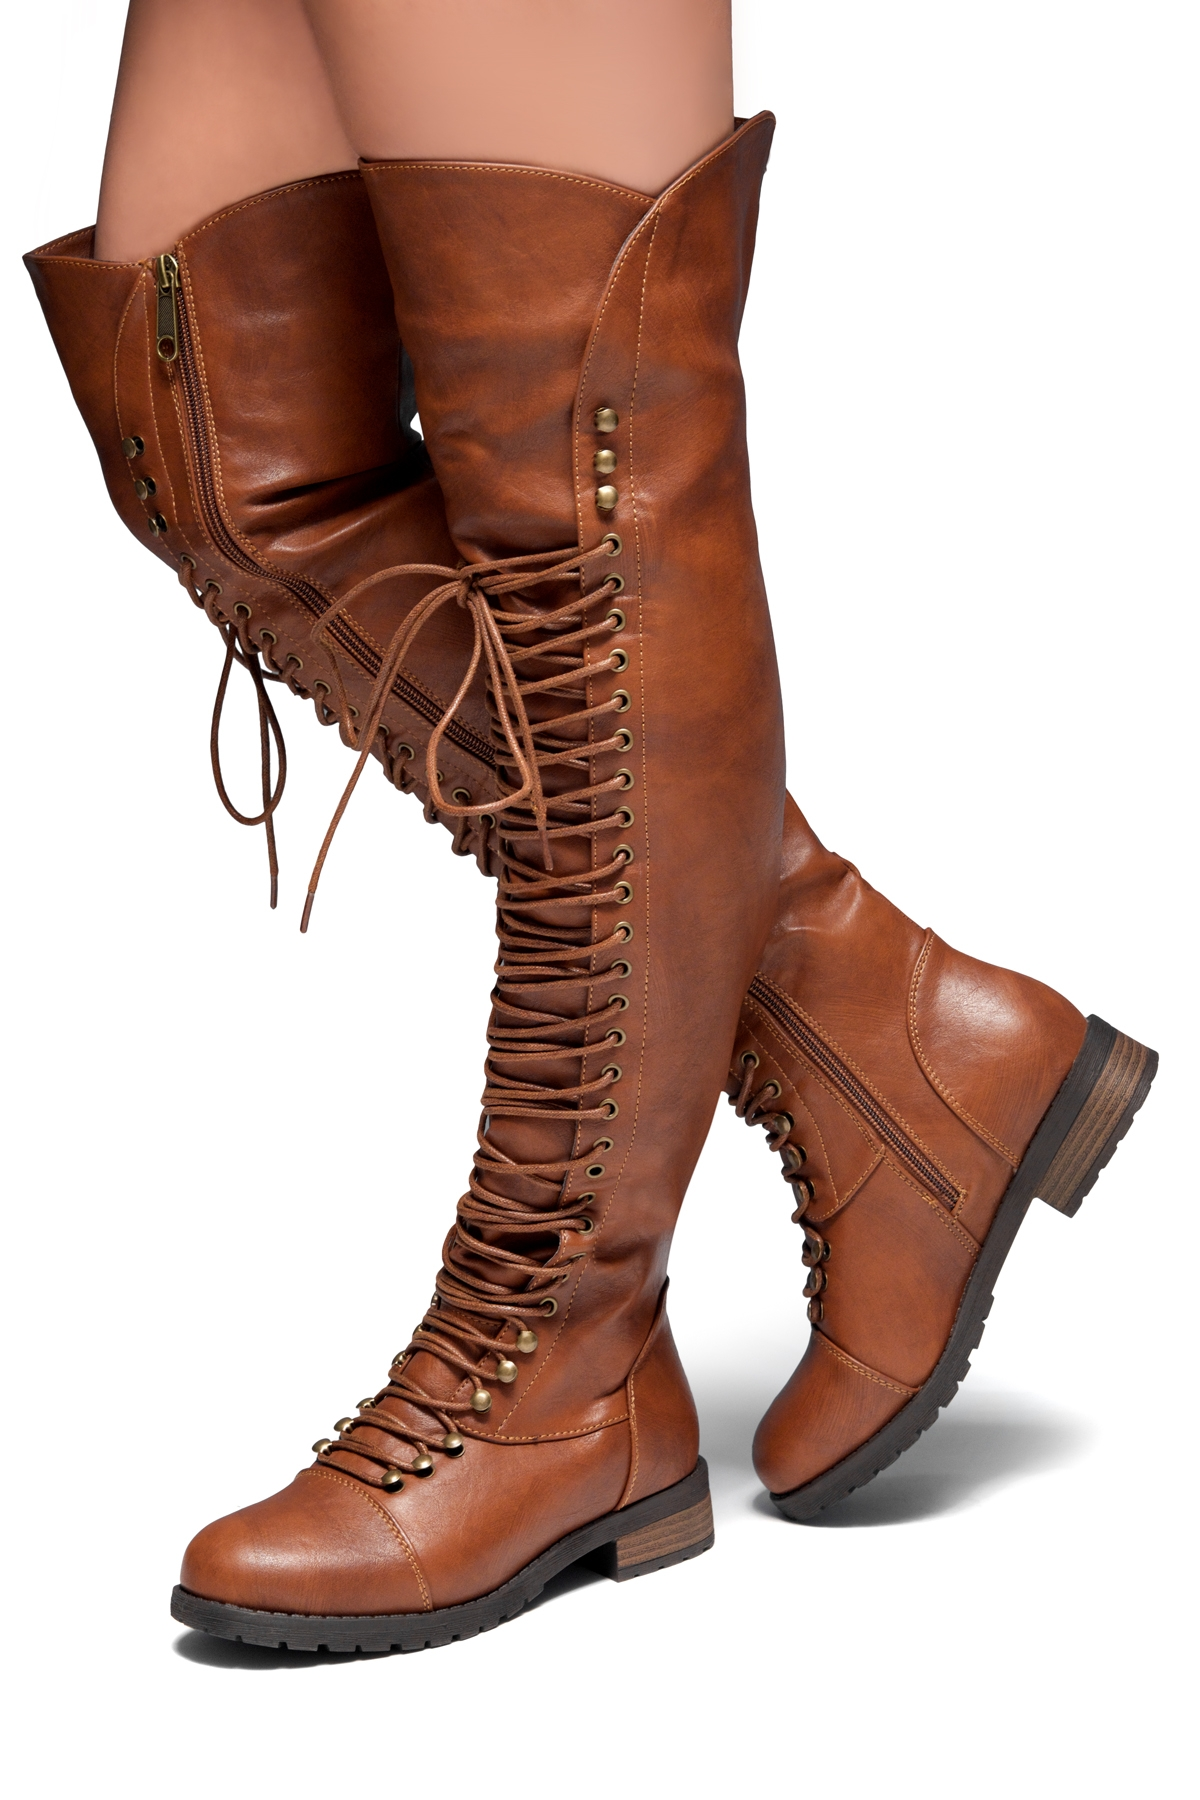 22040c10f62 HerStyle Kristrrina-Combat Lace up Over-The-Knee Boots(Brown)